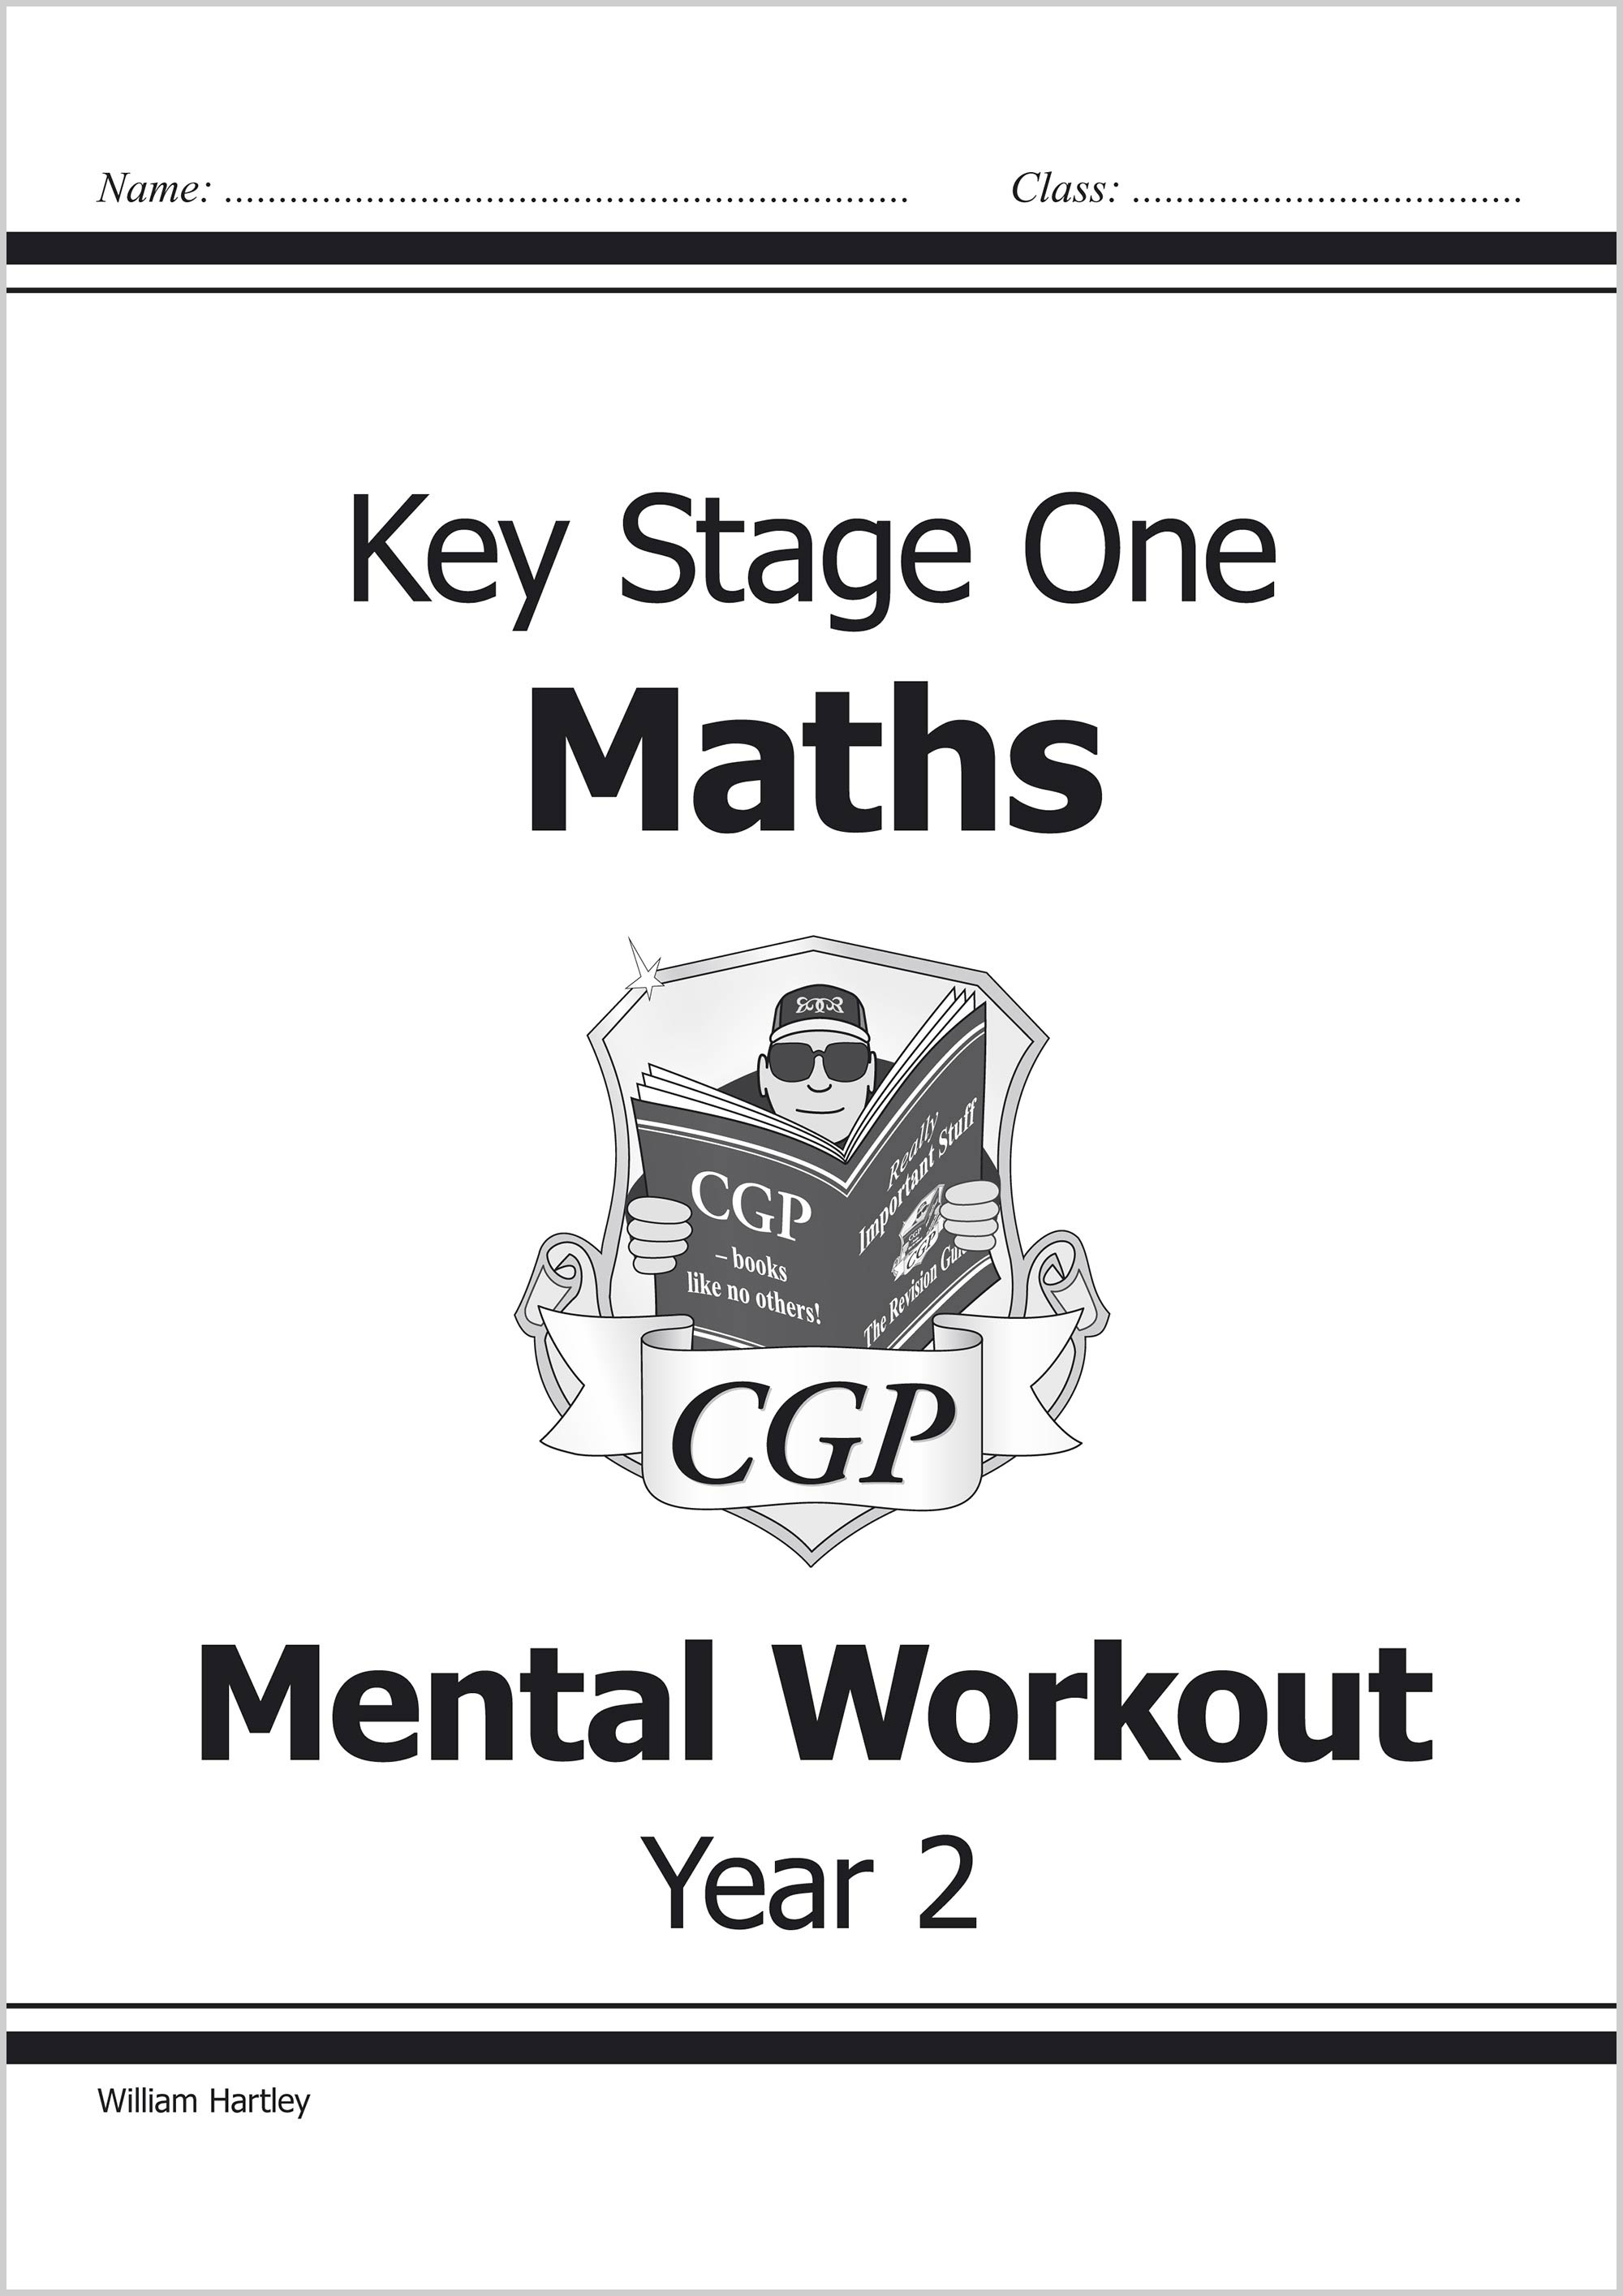 M2MA12 - KS1 Mental Maths Workout - Year 2